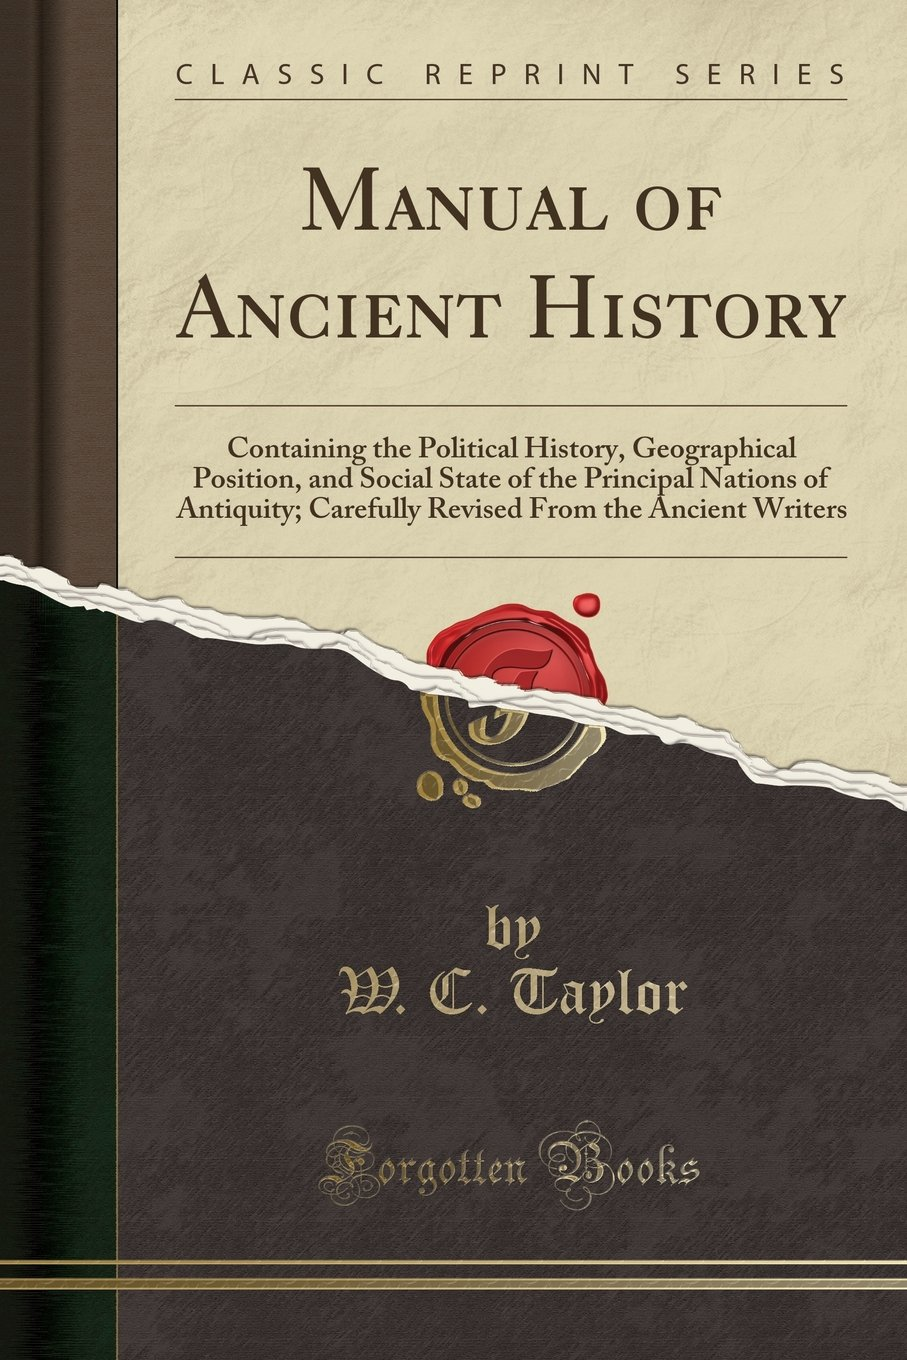 Manual of Ancient History: Containing the Political History, Geographical Position, and Social State of the Principal Nations of Antiquity; Carefully Revised From the Ancient Writers (Classic Reprint) pdf